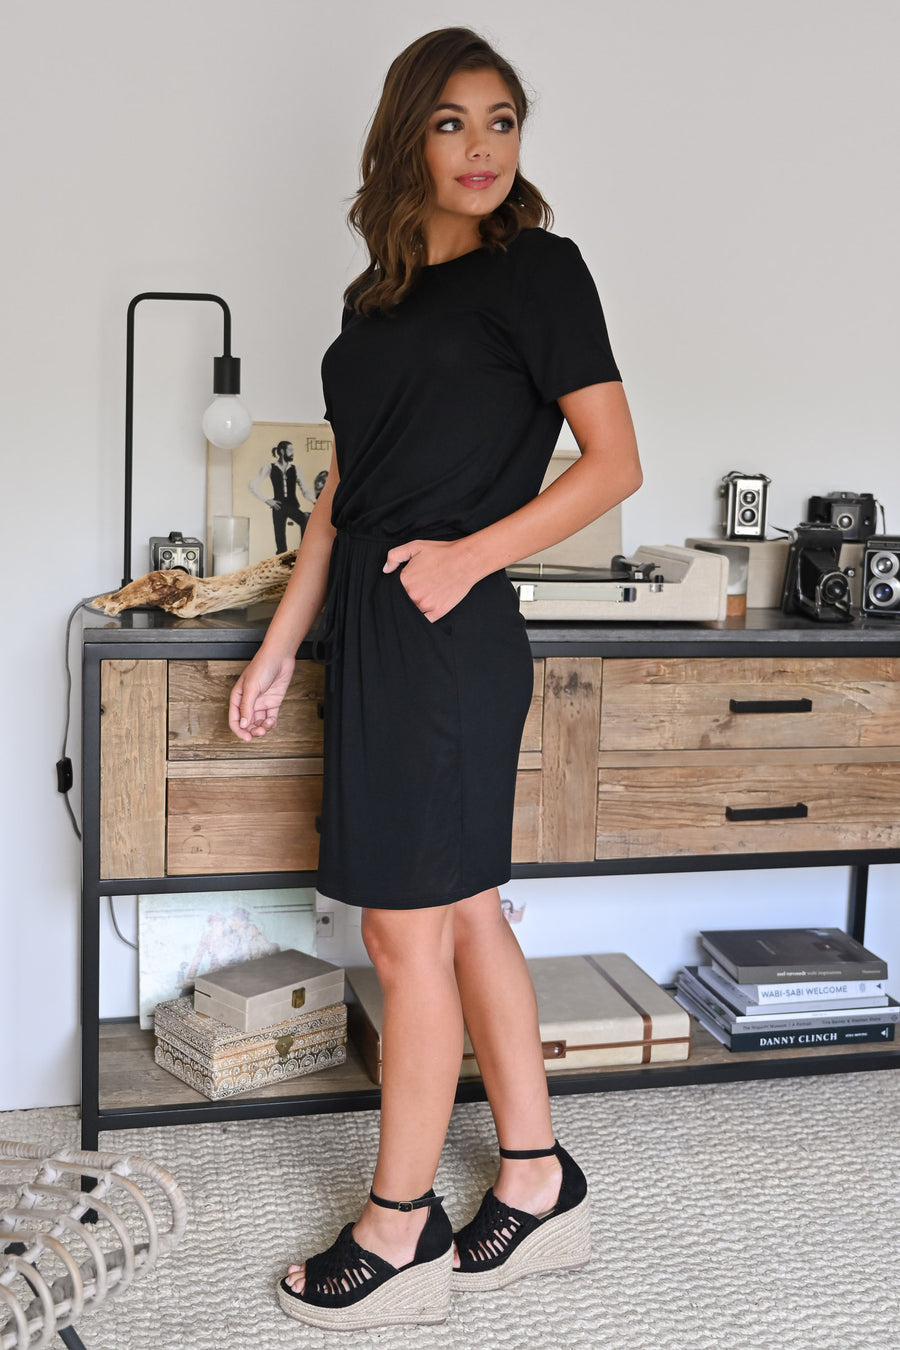 Don't Forget Dress - Black womens casual little black dress with pockets and short sleeves closet candy front